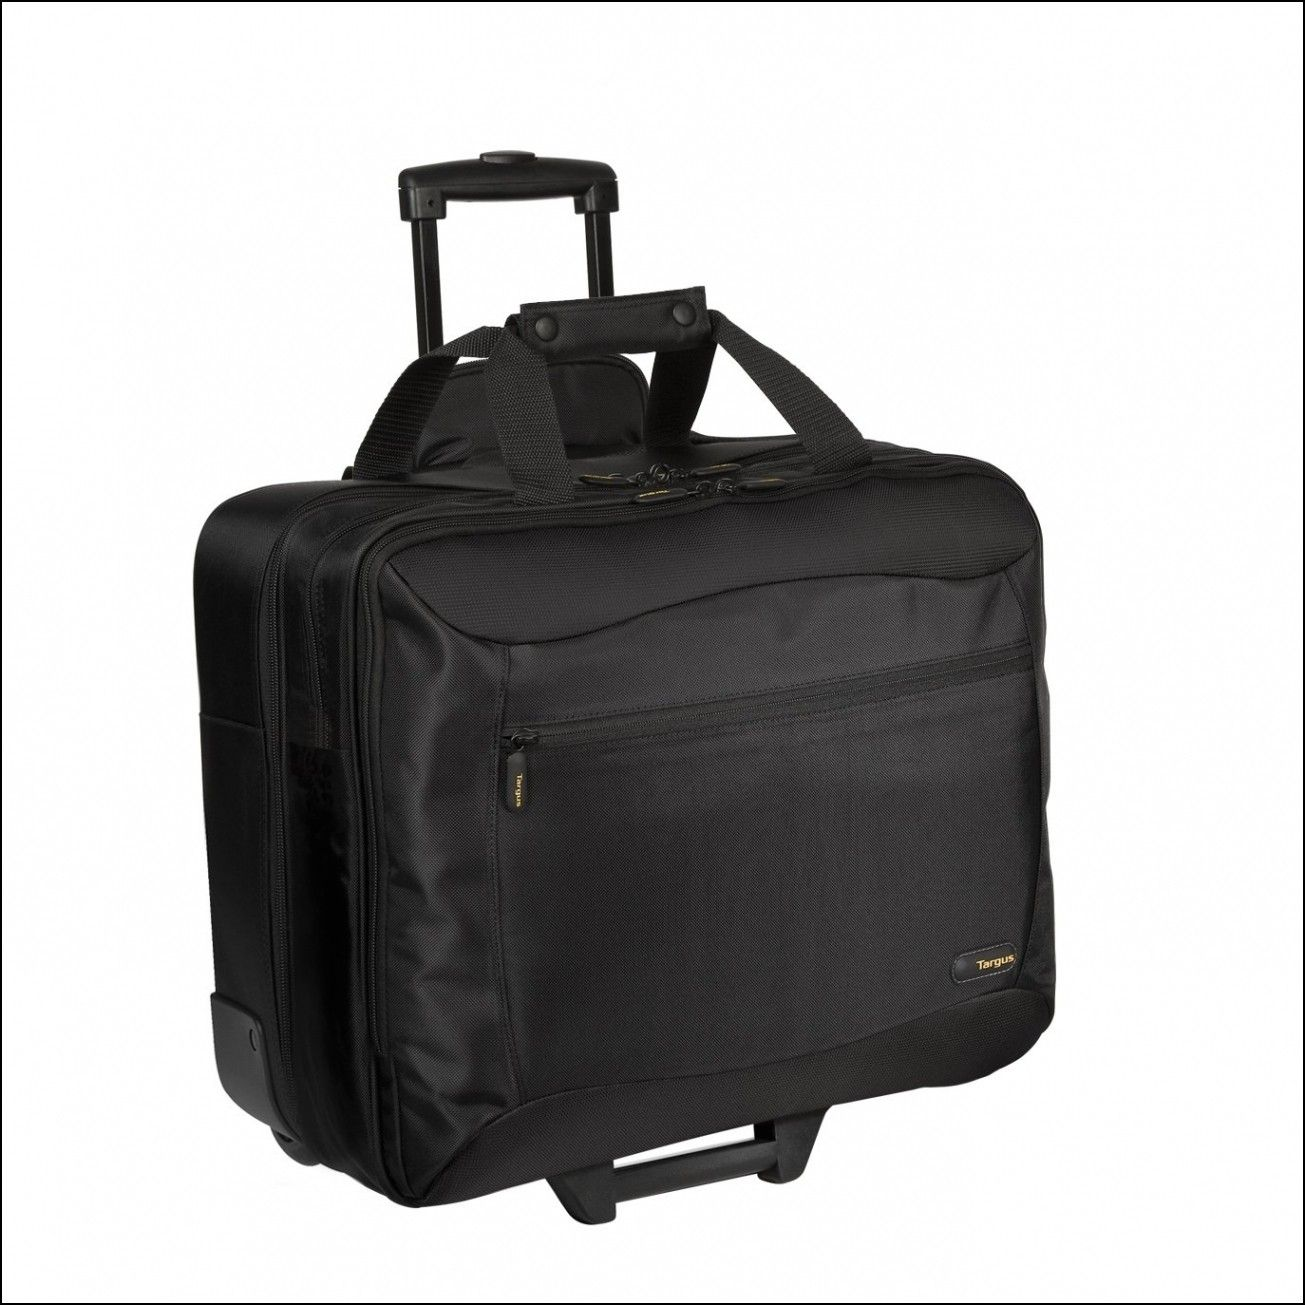 Small Travel Trailer Interiors: Small Travel Bags On Wheels